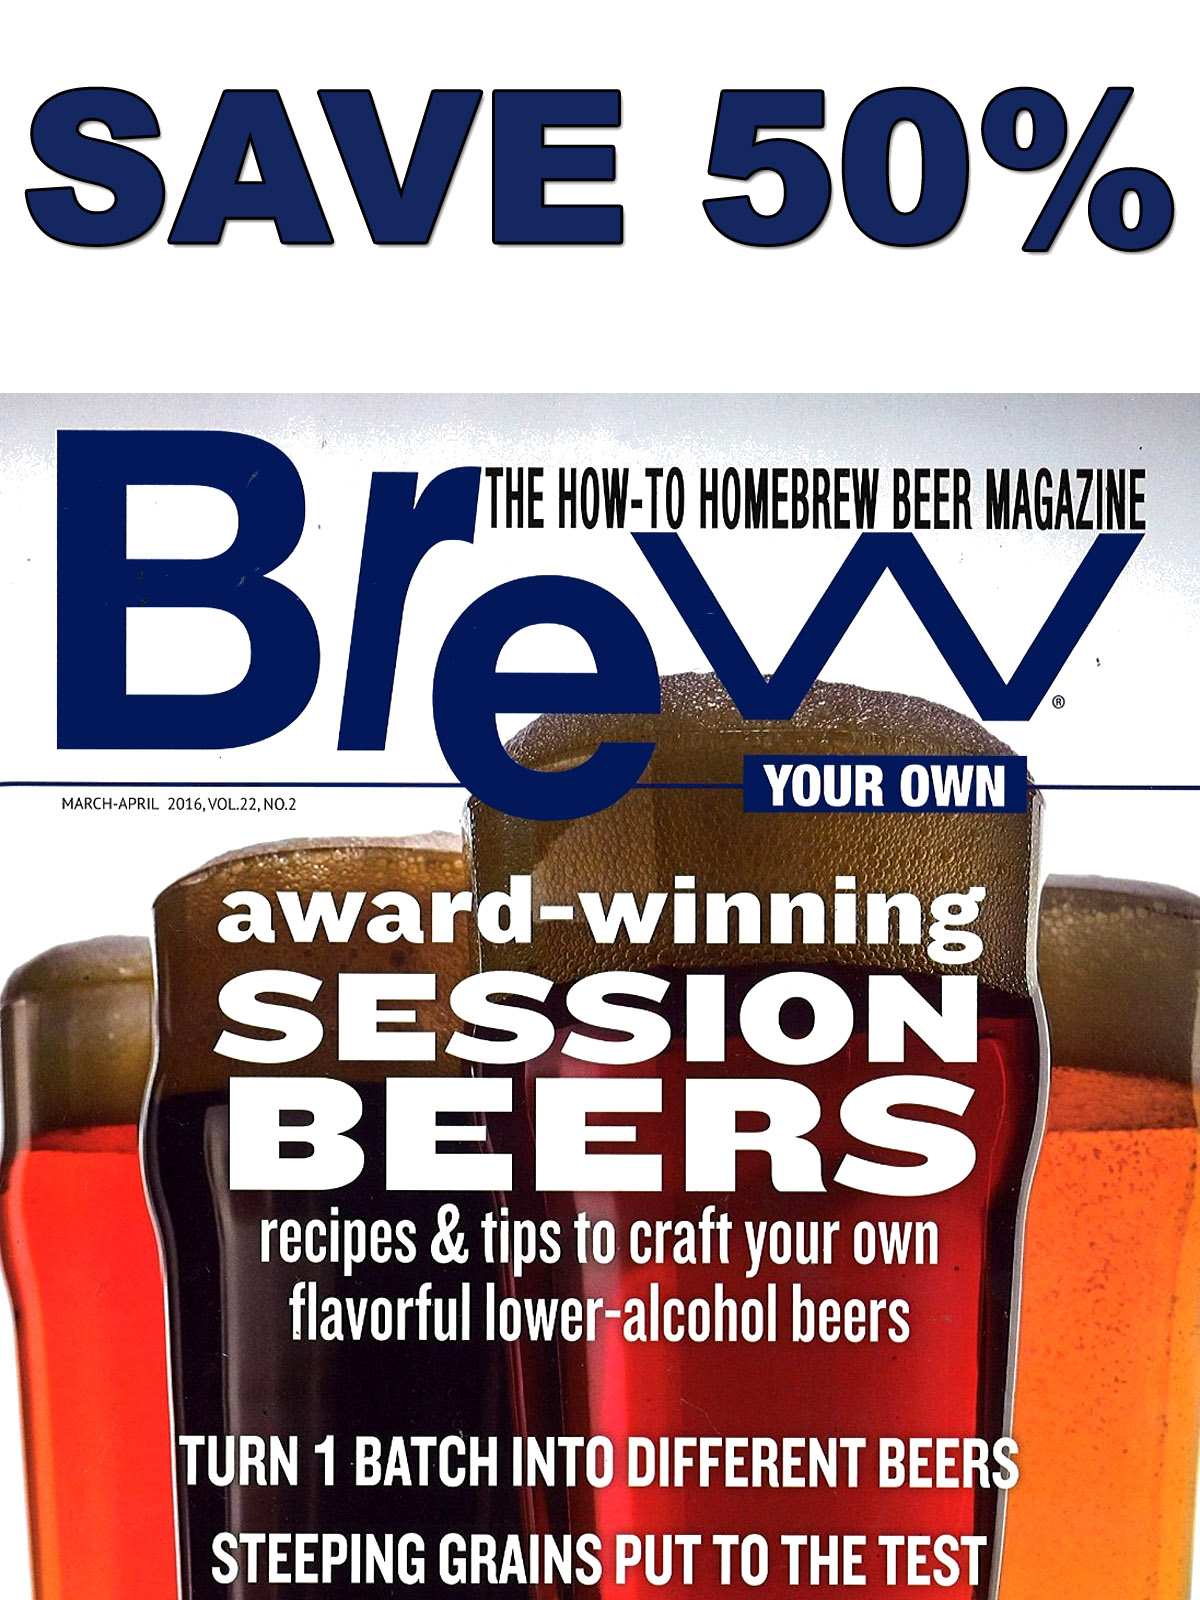 Save 50% On A Subscription to Brew Your Own Magazine  Coupon Code